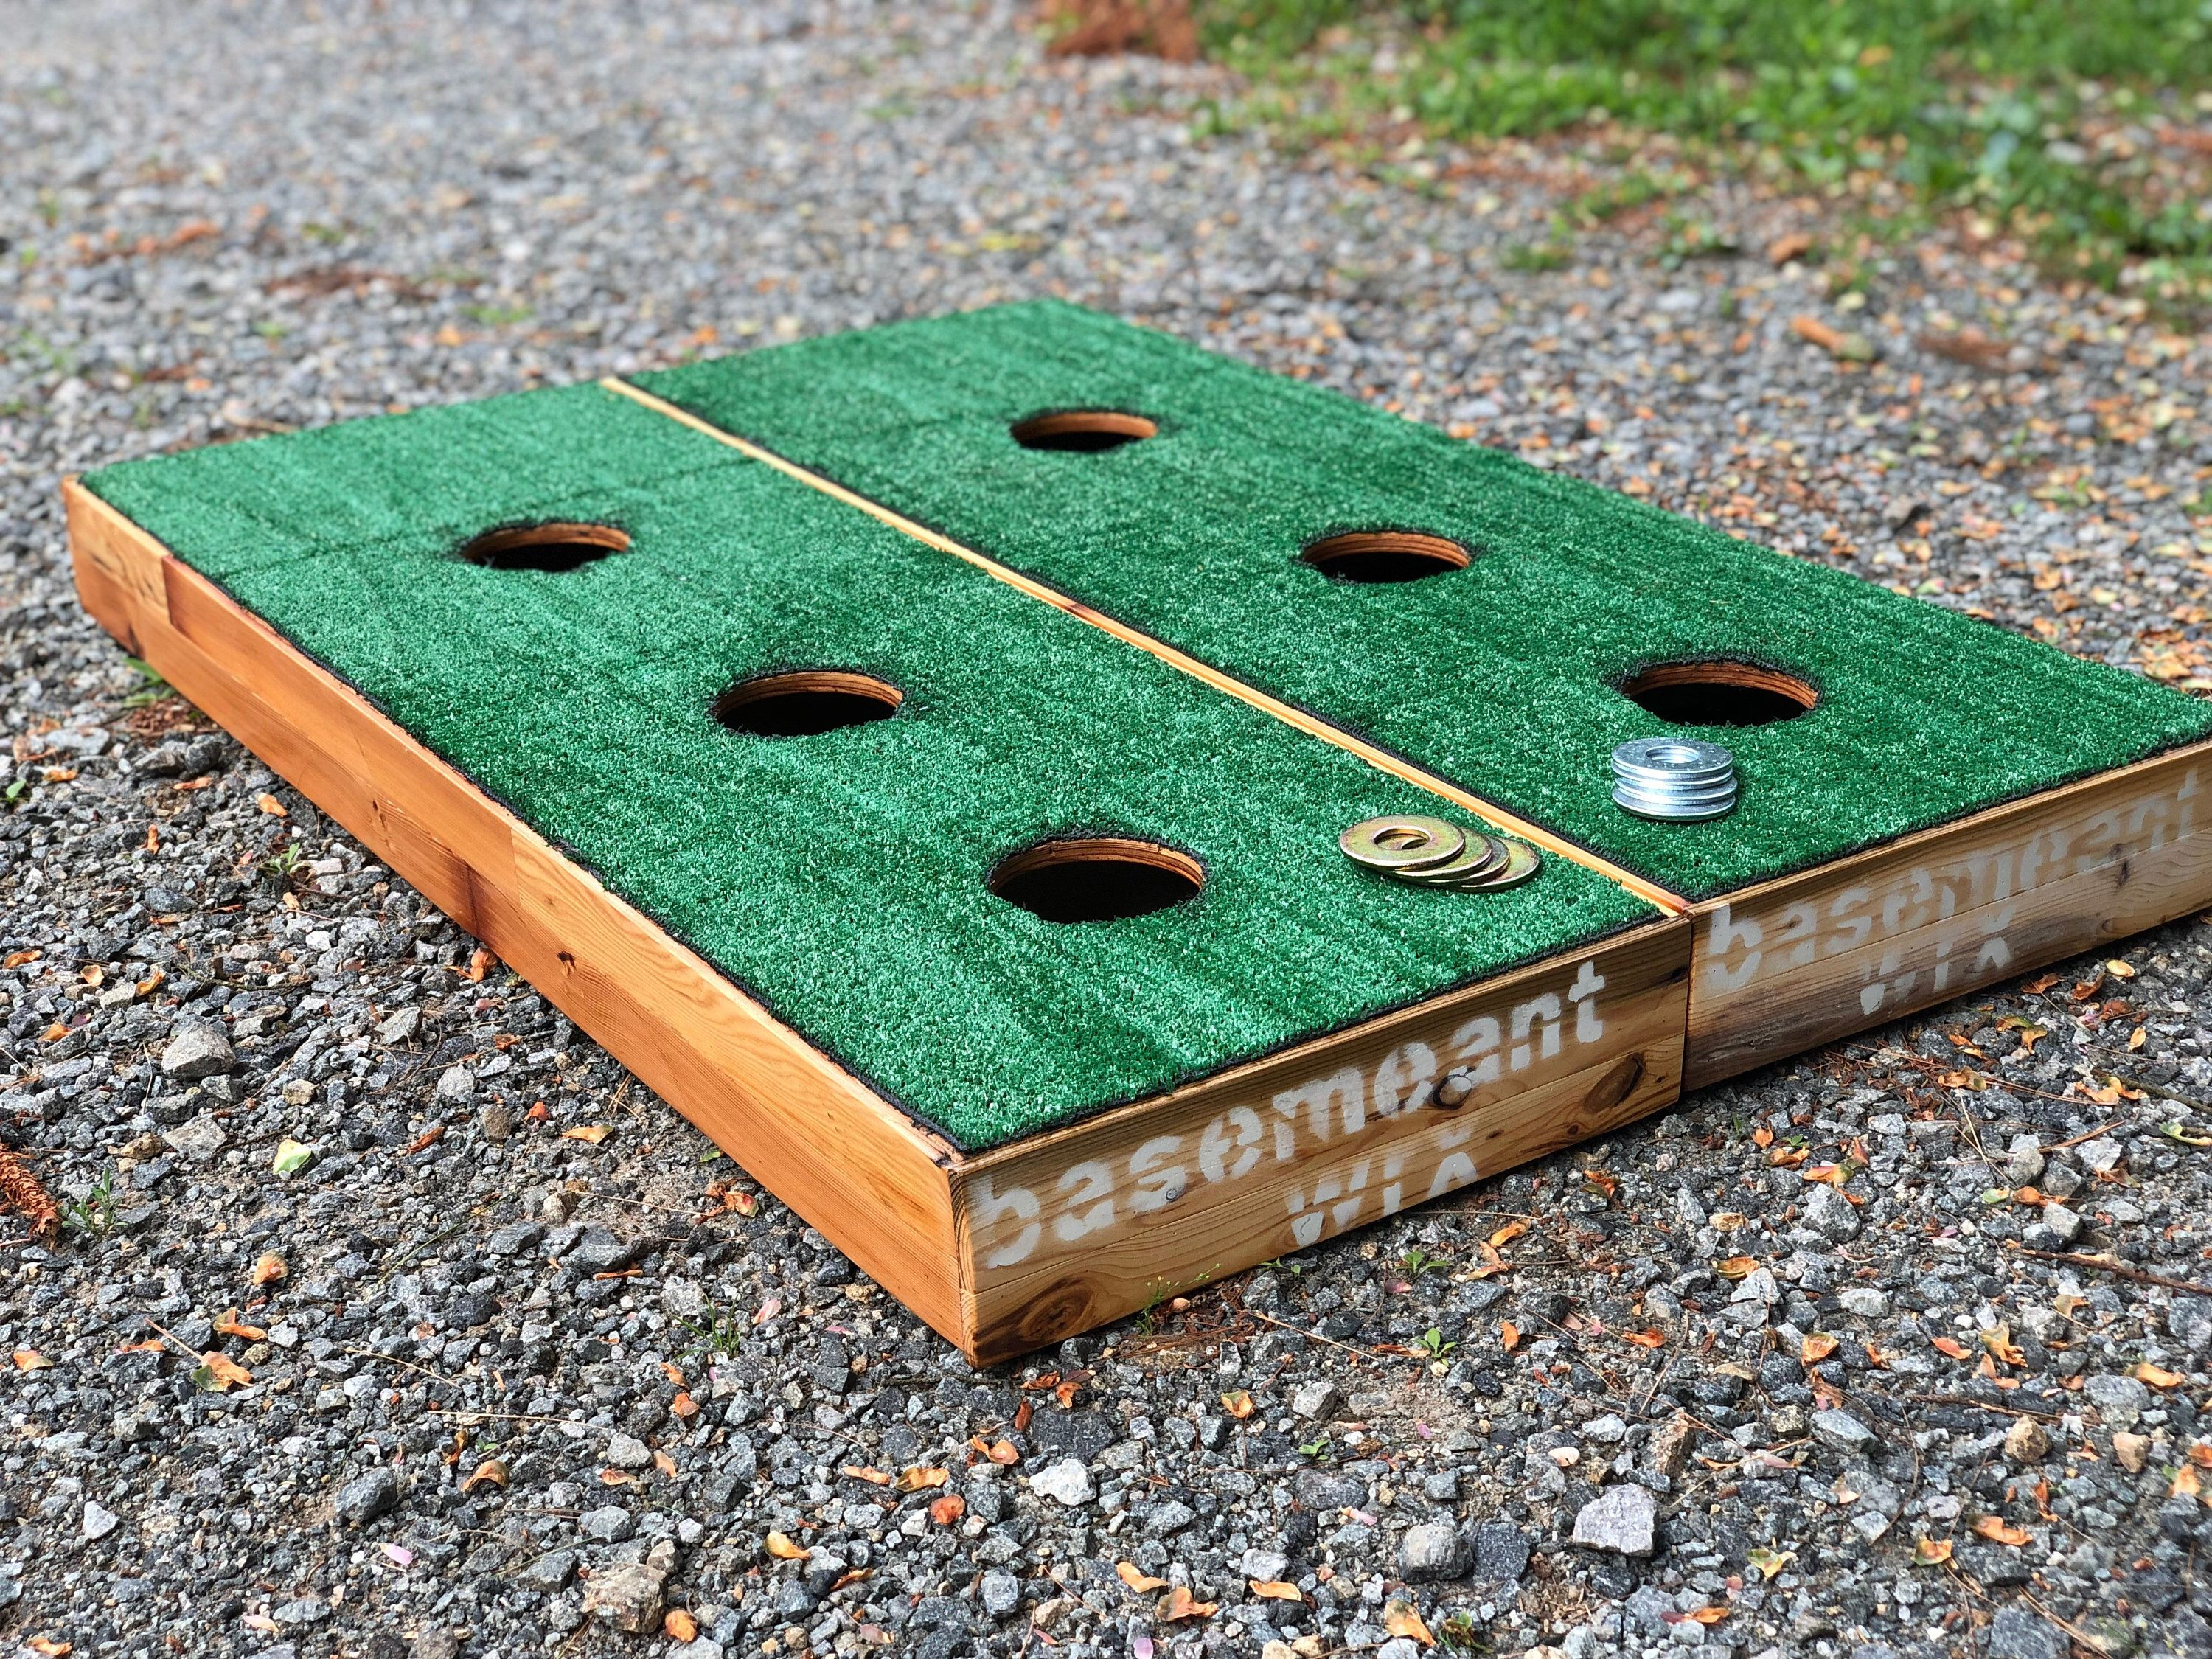 Washers Toss Lawn Game Backyard Lawn GAmes Washer toss